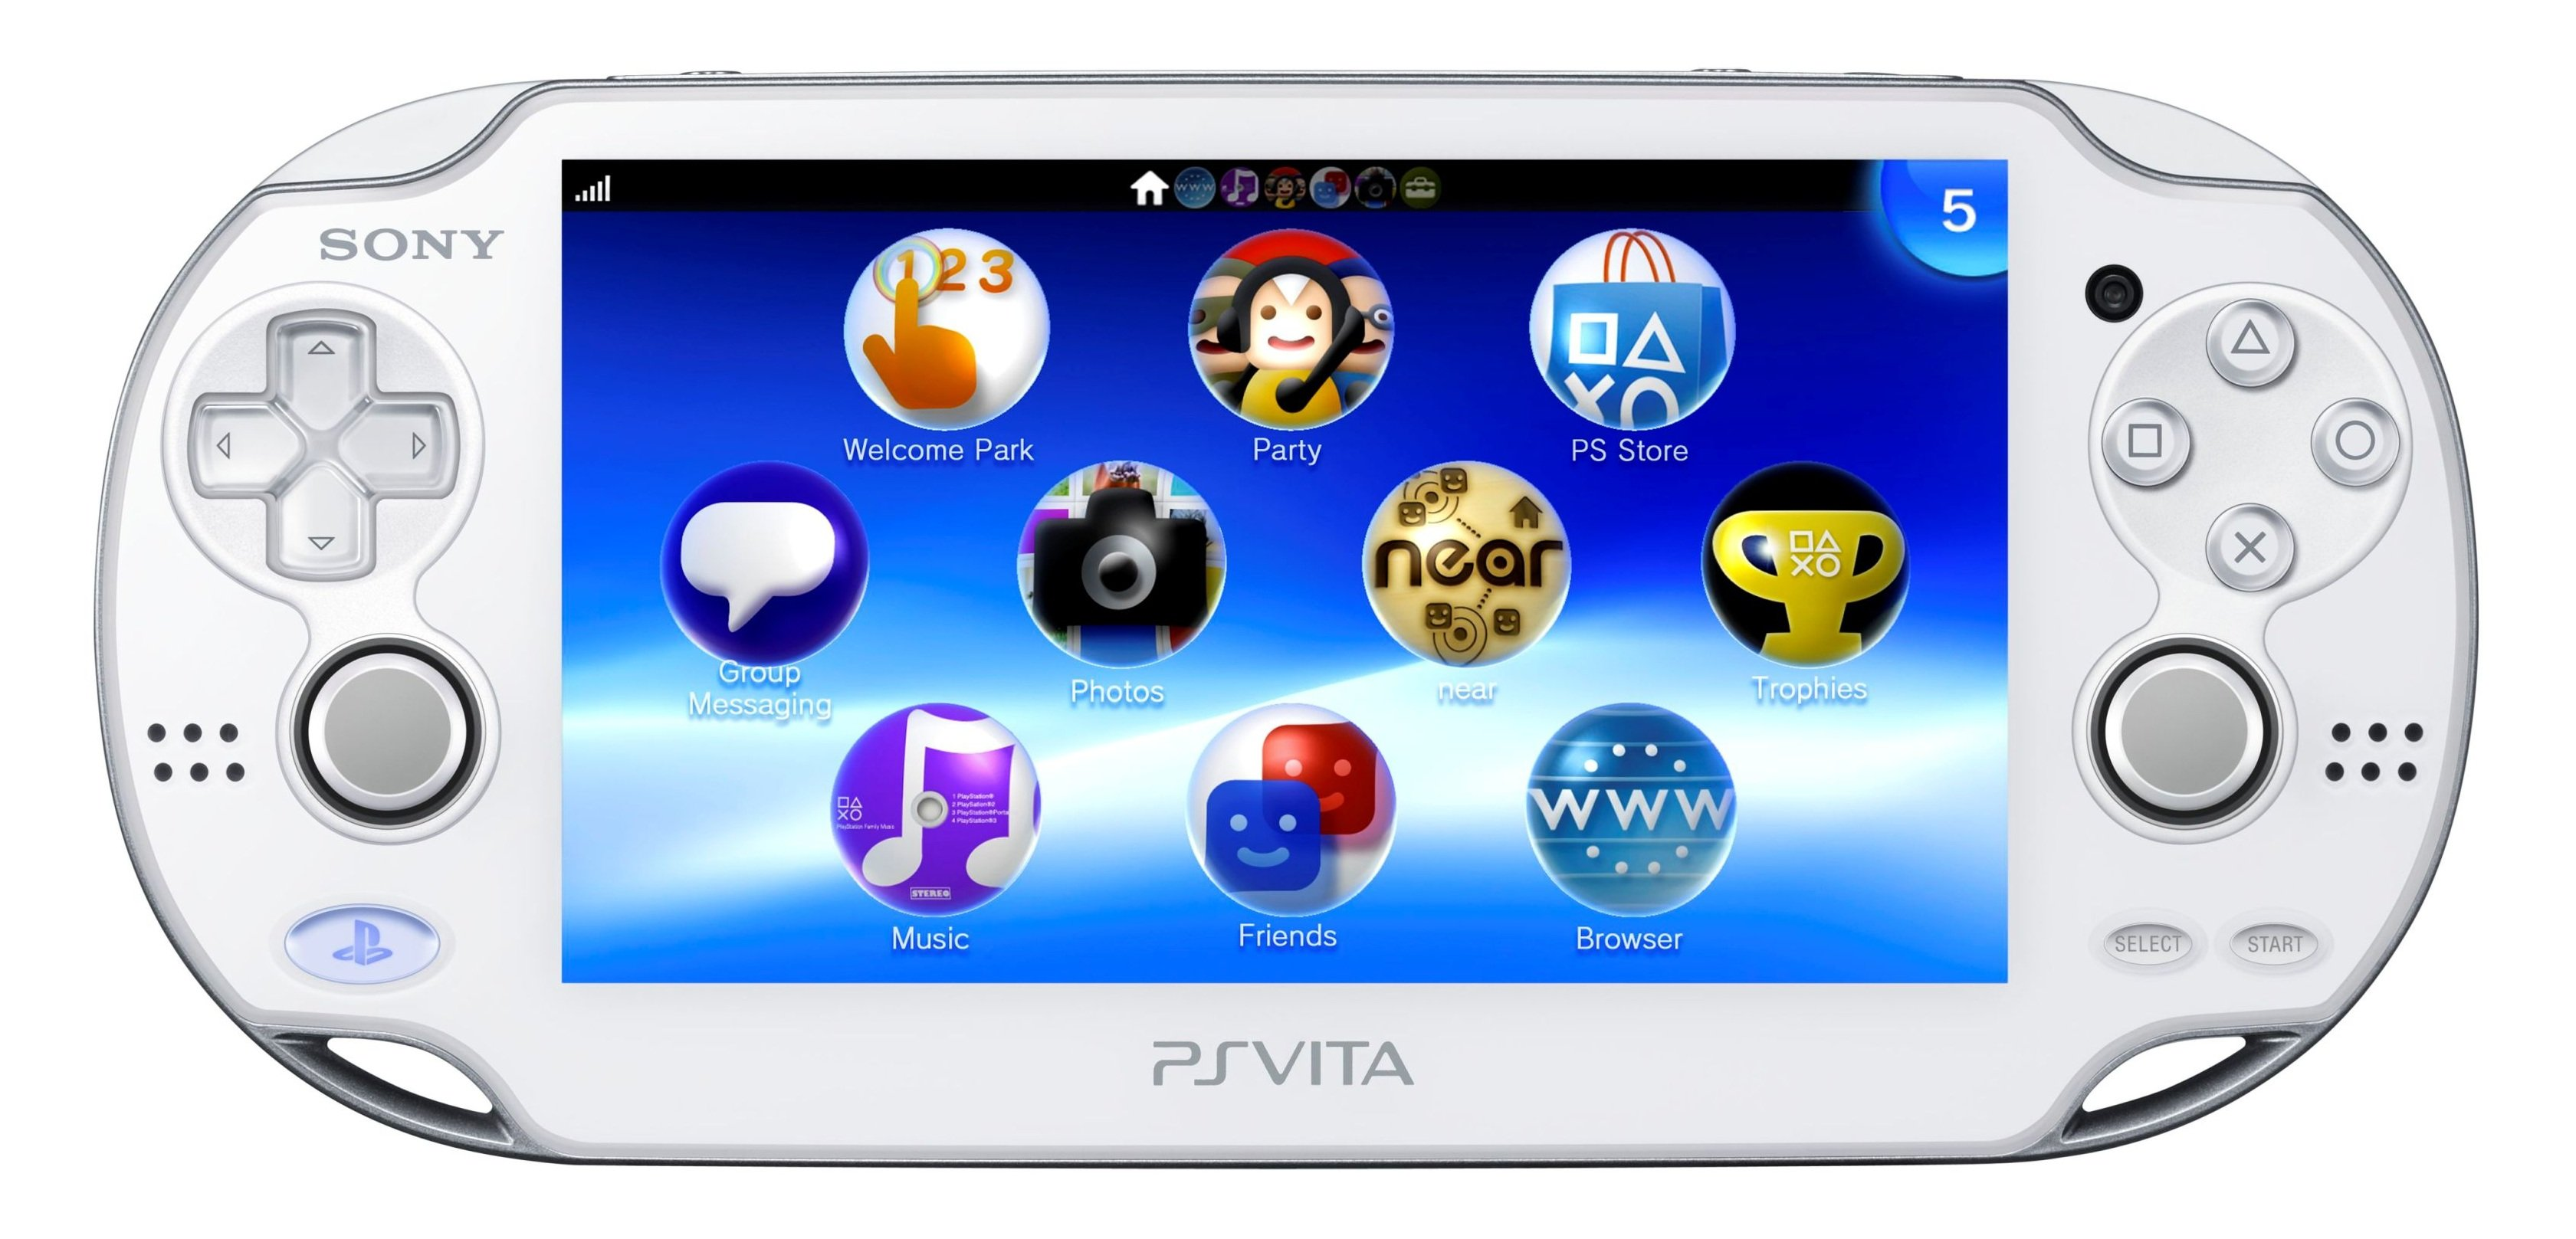 Sony Ps Vita Games : New way to download games your older fw ps vita no